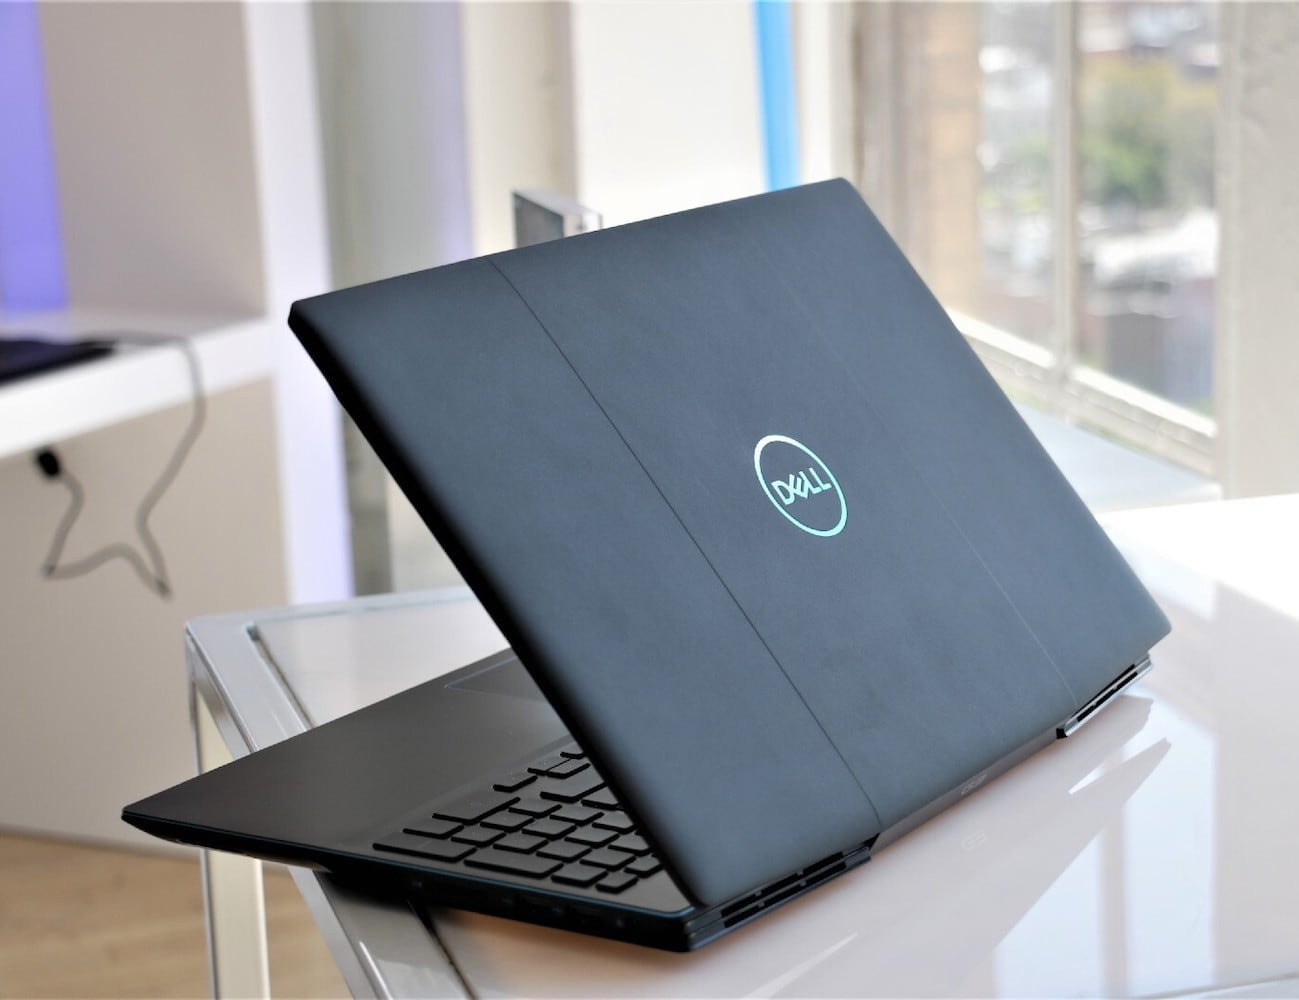 Dell G3 15-Inch Gaming Laptop is a budget-friendly computer with impressive graphics